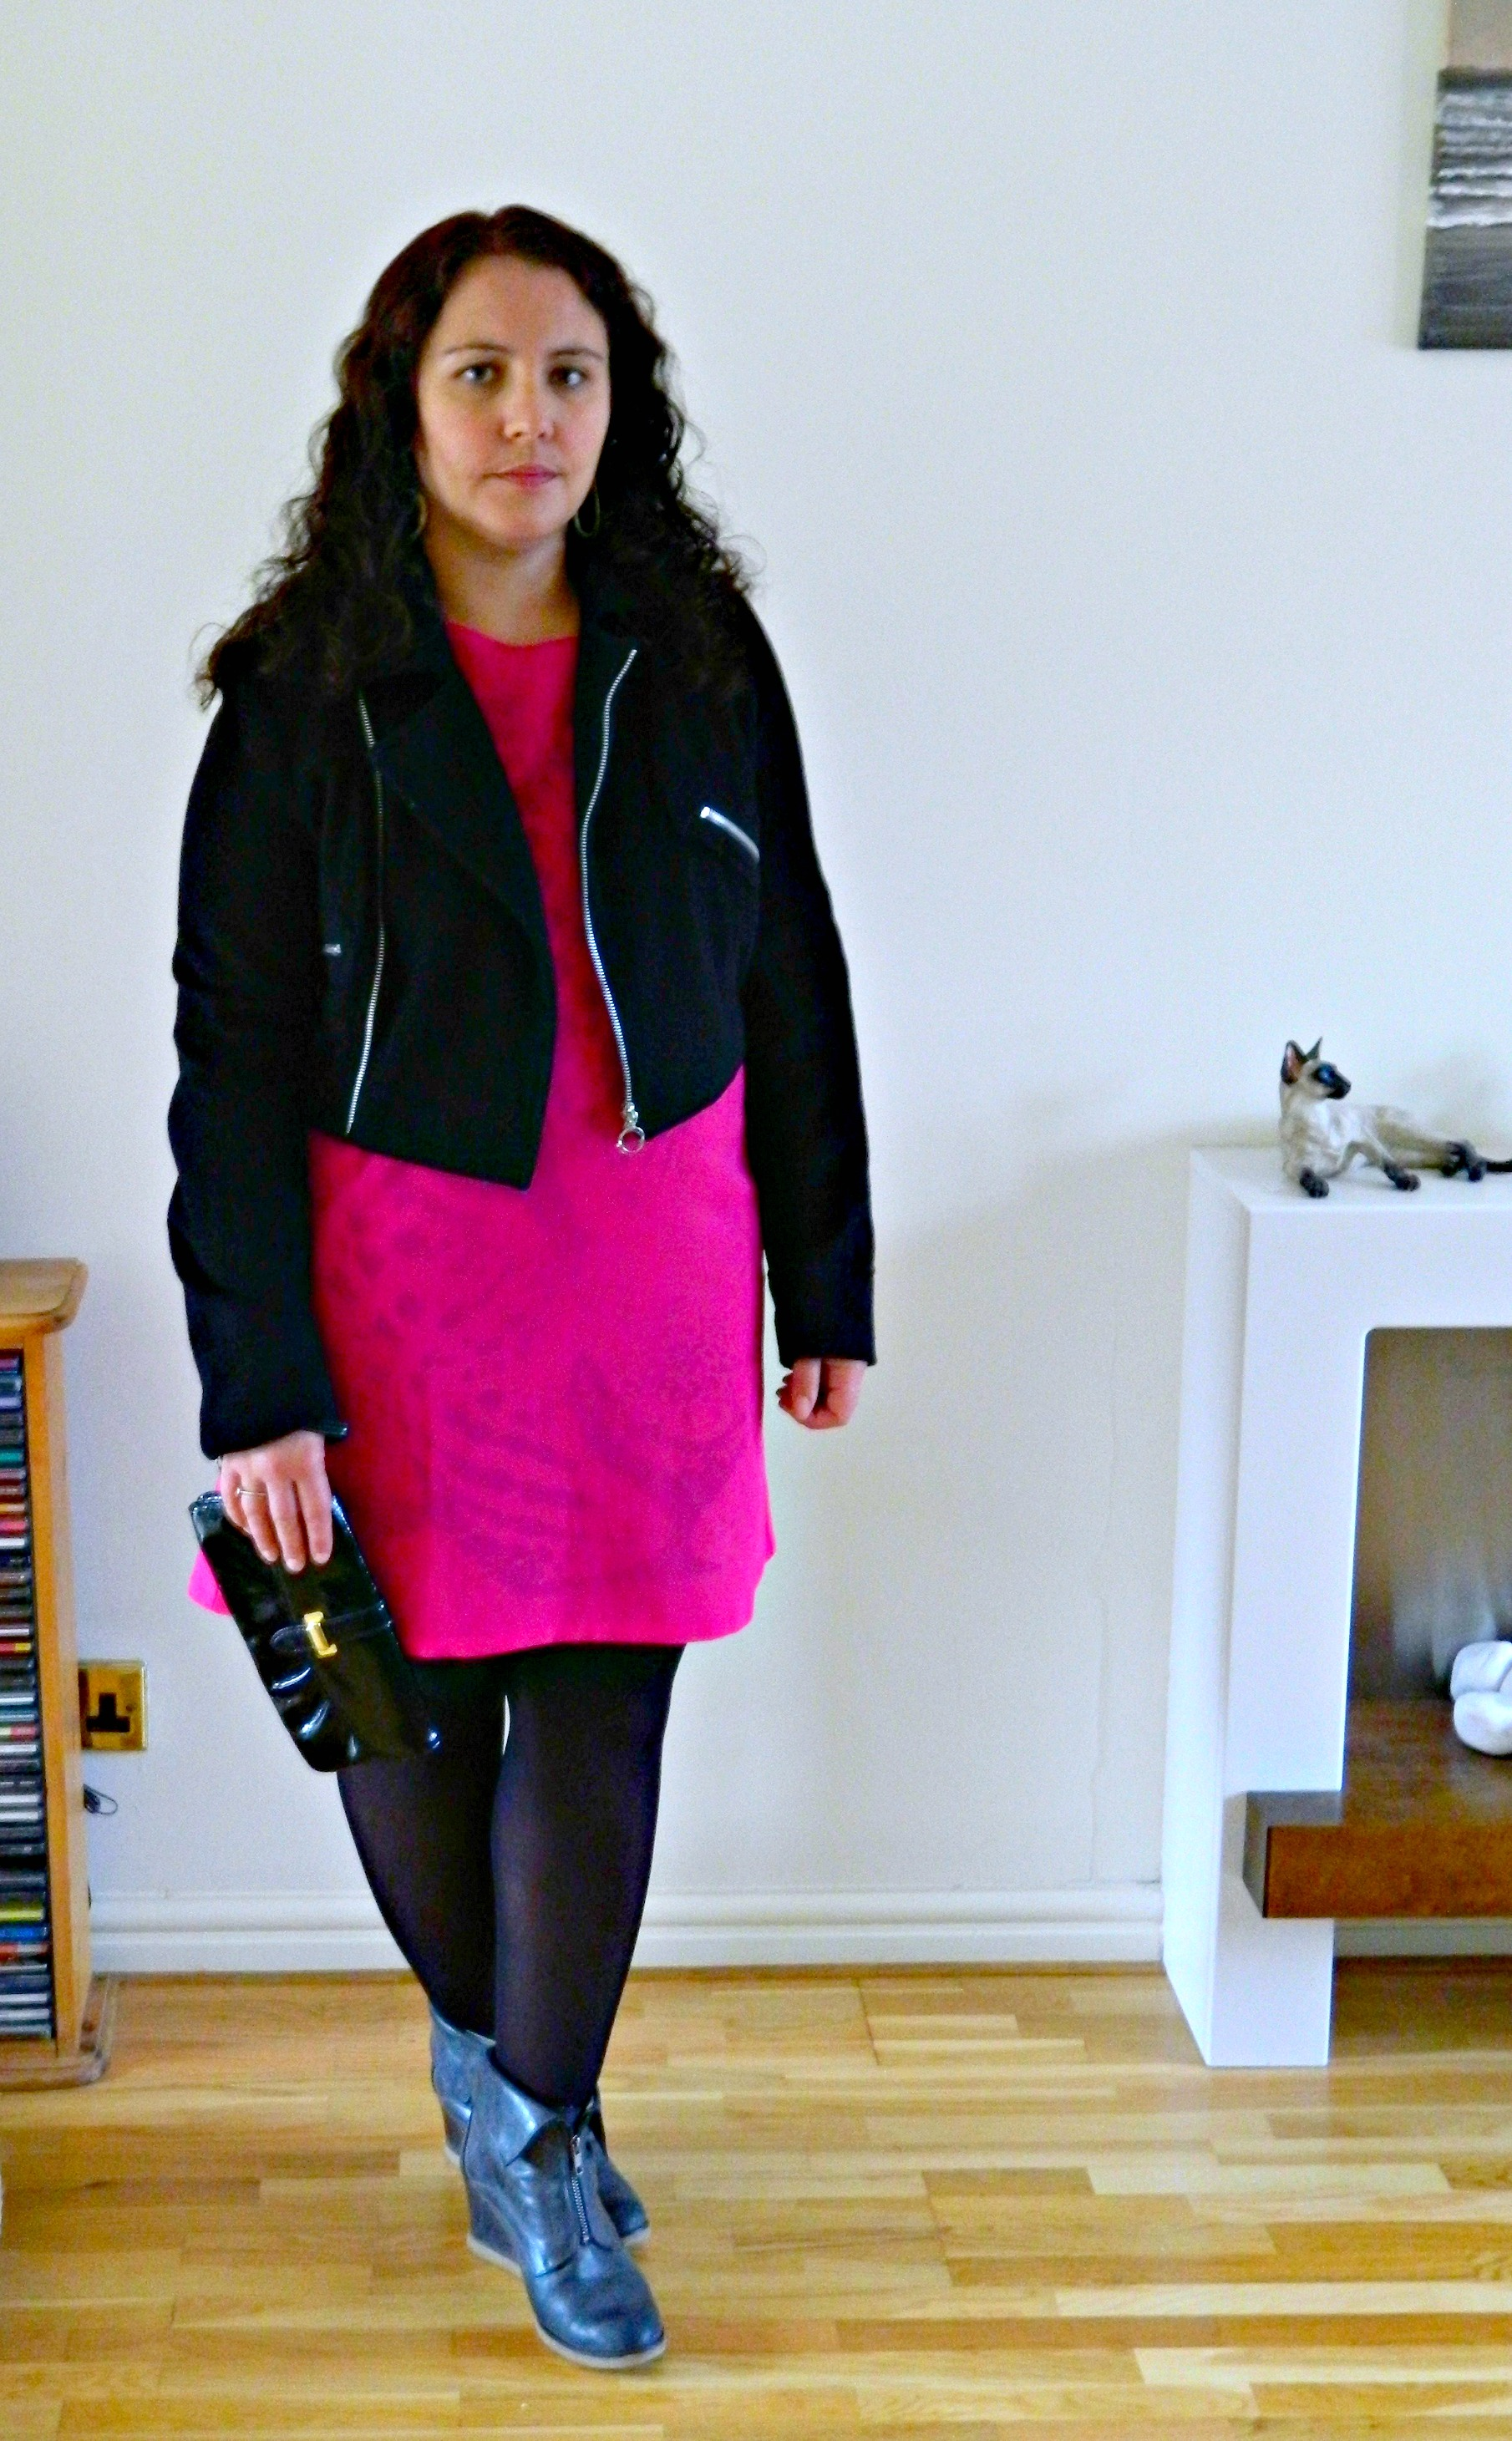 023a Ethical and Sustainable Outfits in 2013